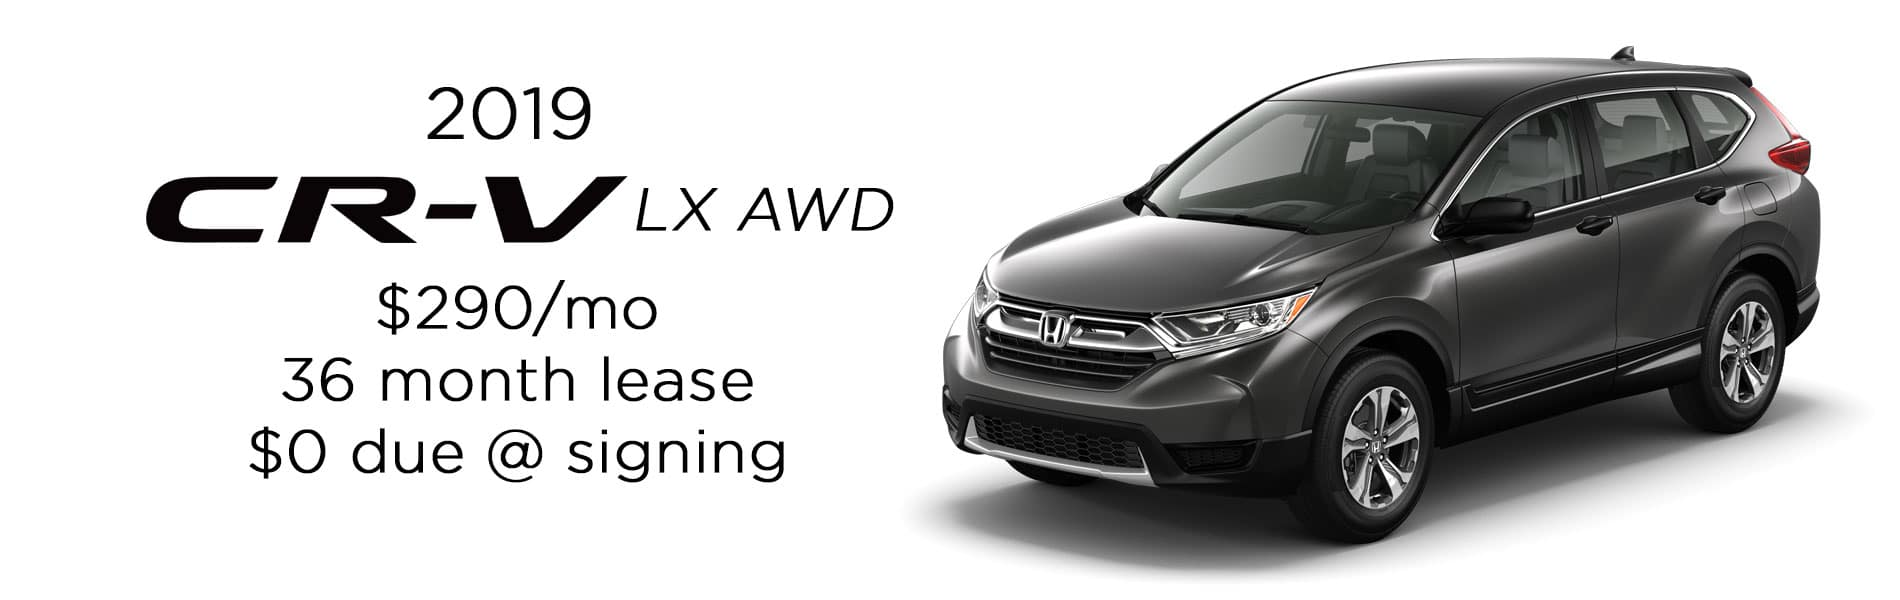 Lease a 2019 Honda CR-V LX AWD for $290 per month lease with $0 due at signing